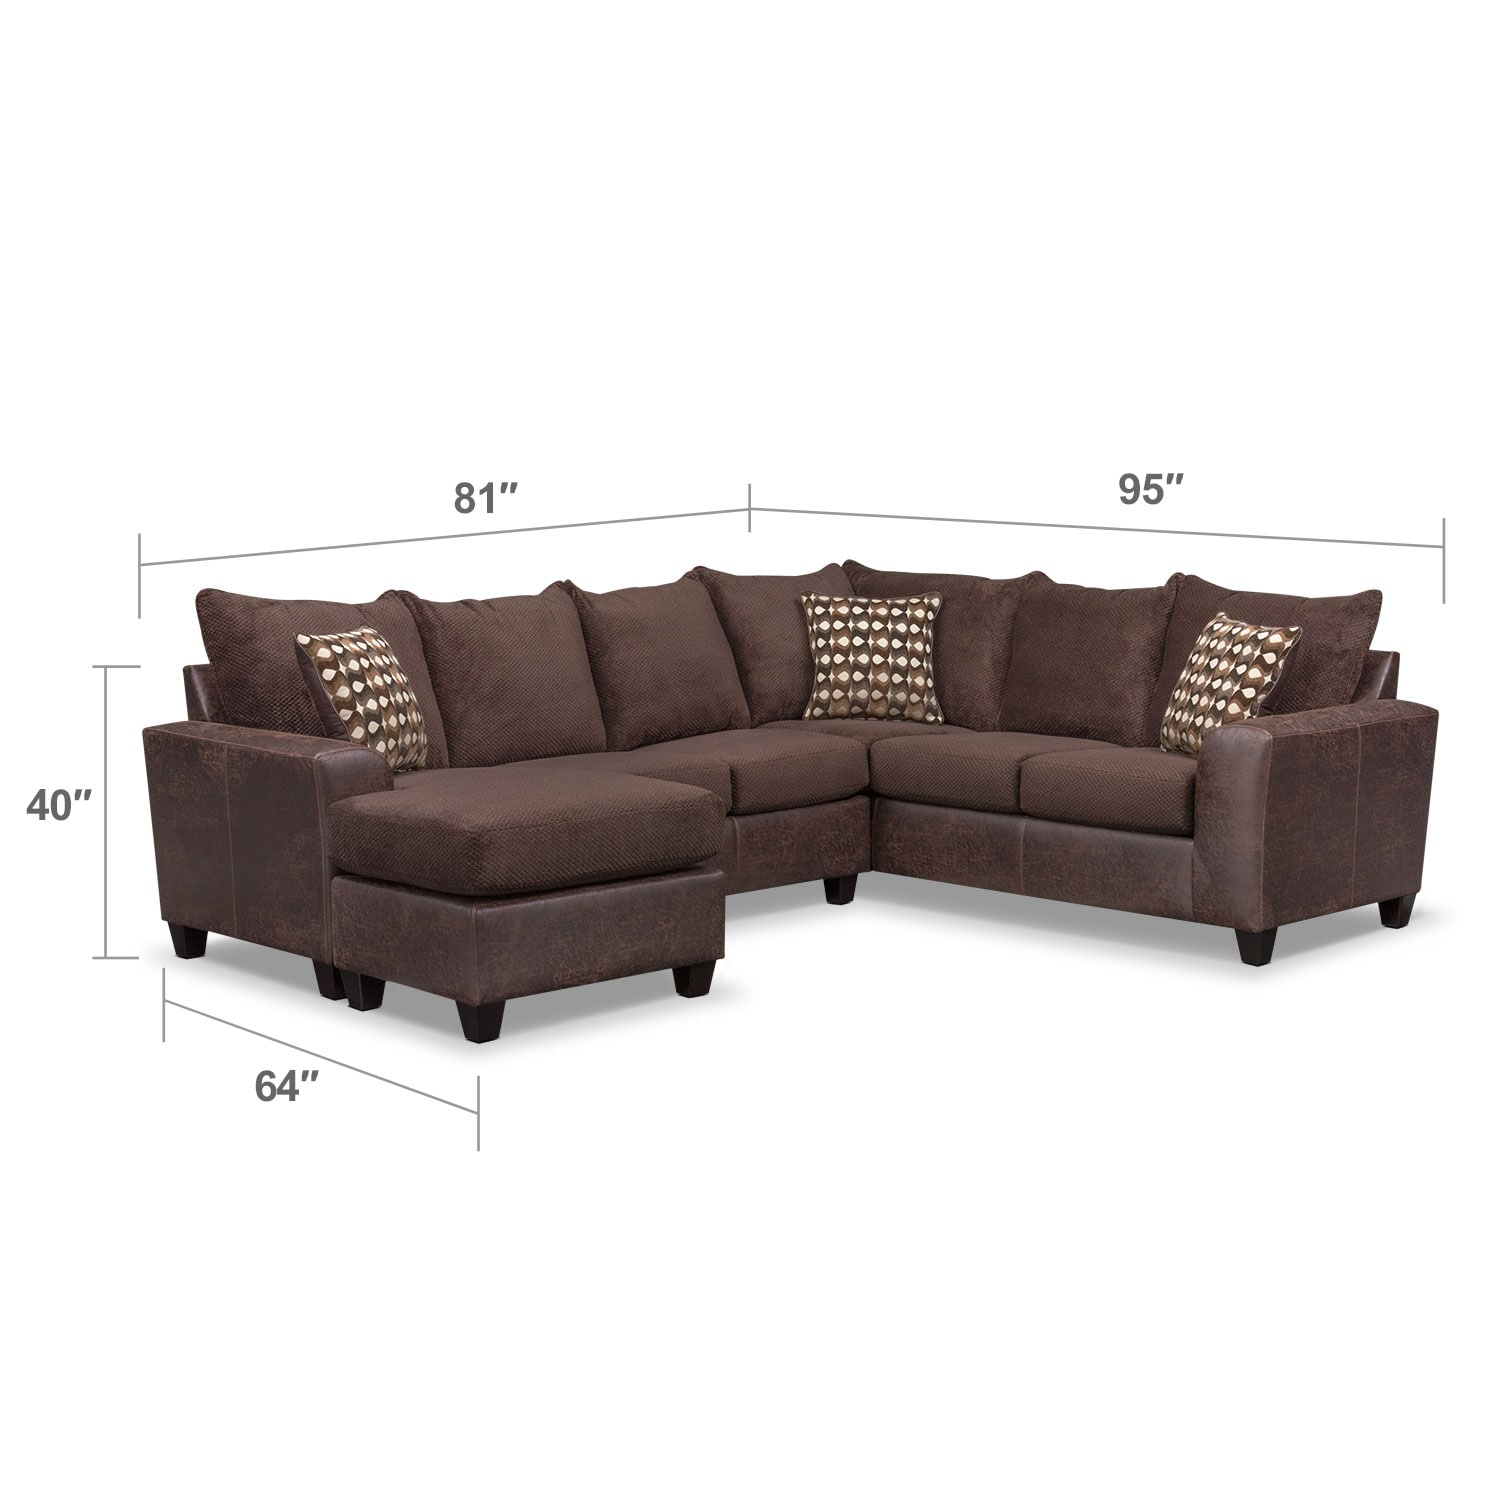 Living Room Furniture - Brando 3-Piece Sectional with Modular Chaise - Chocolate